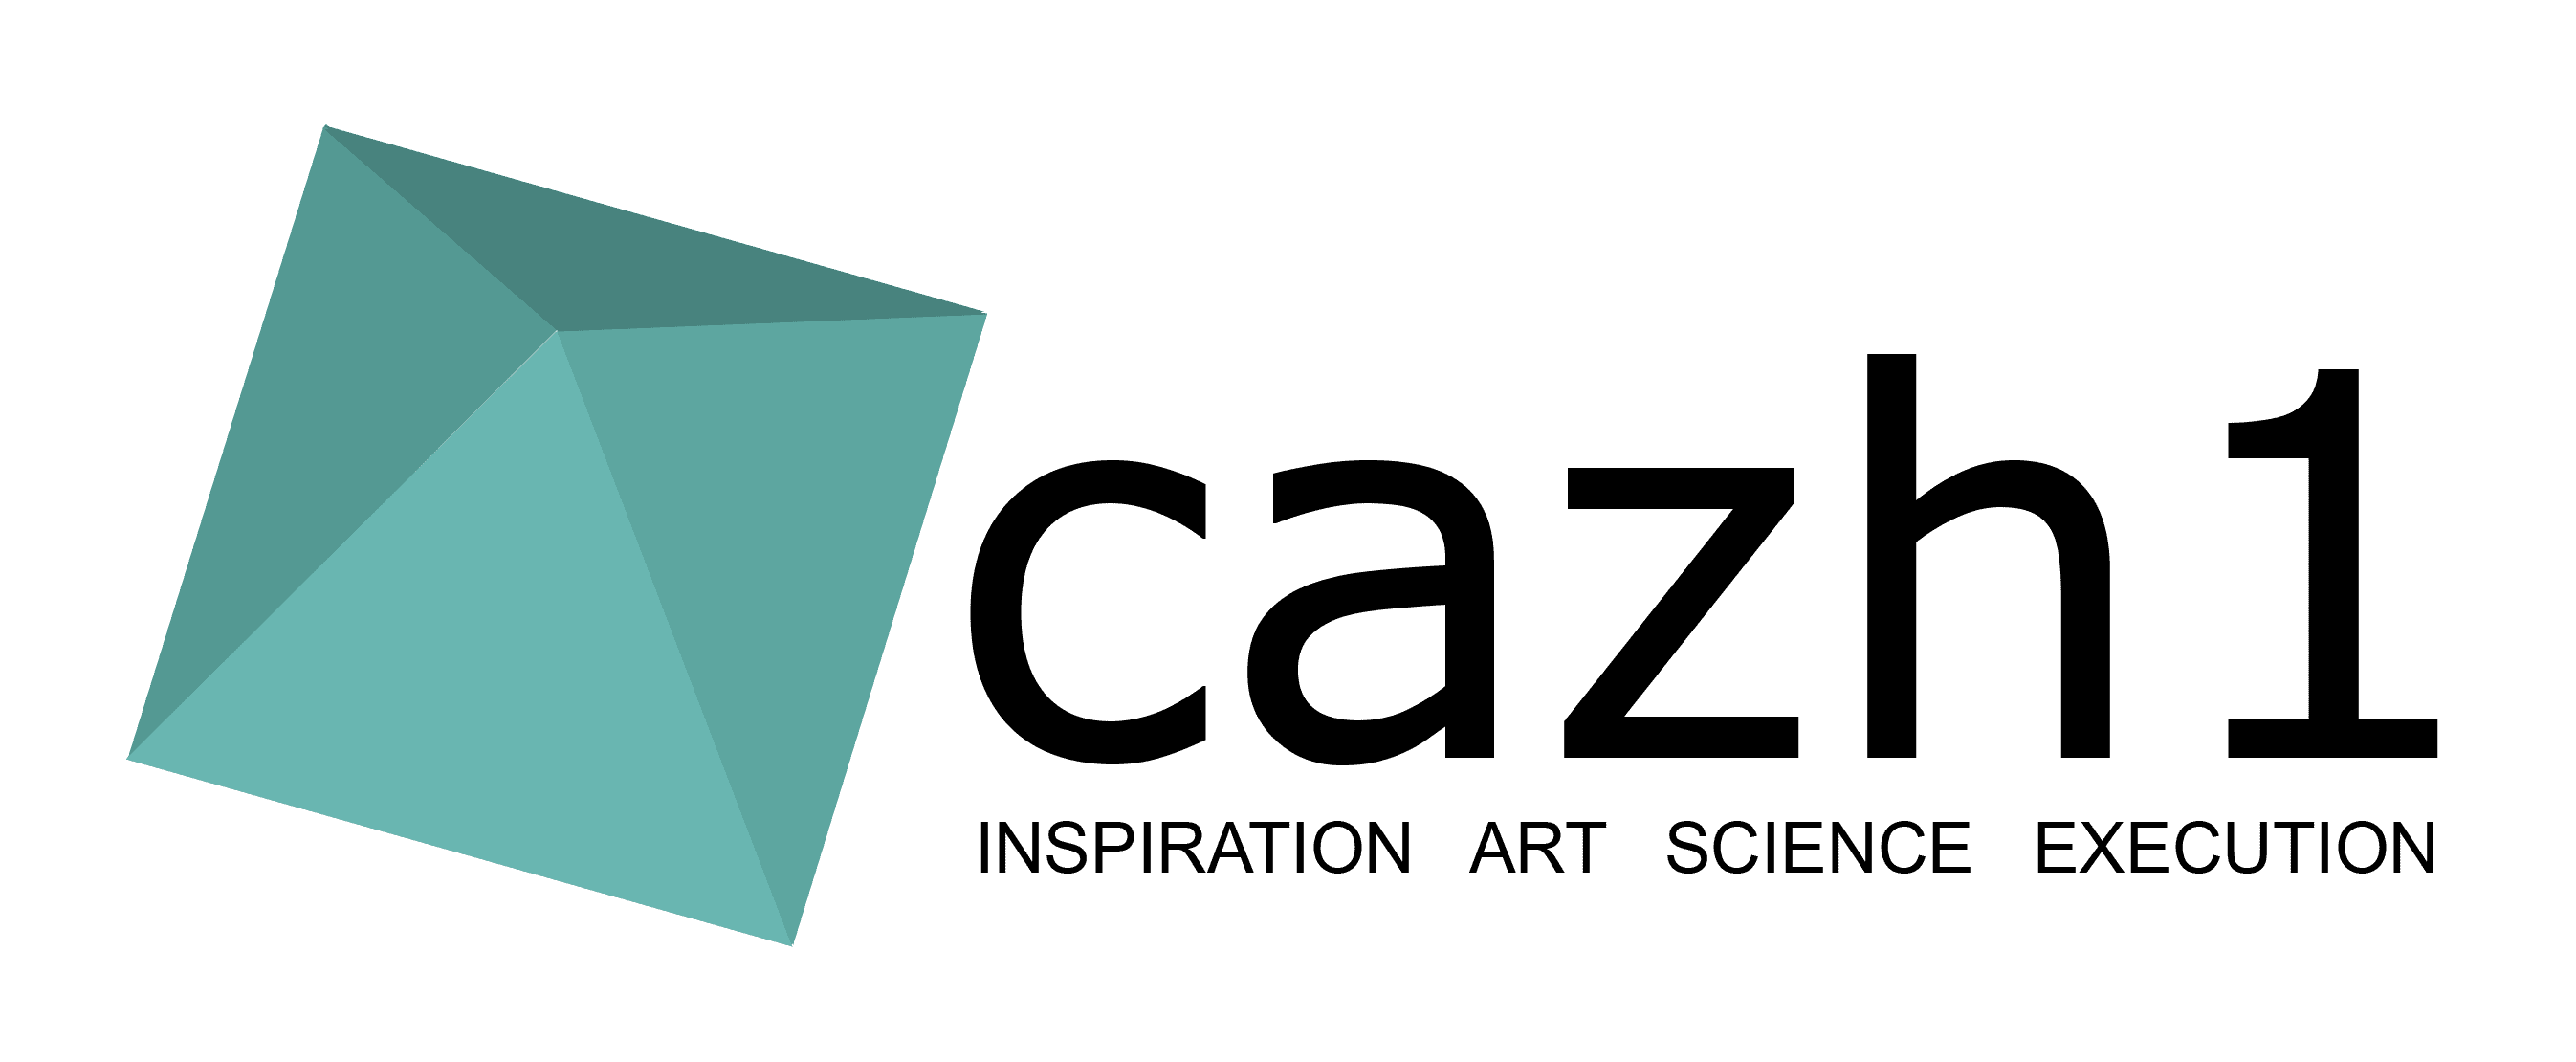 cazh1: inspiration, art, science, execution